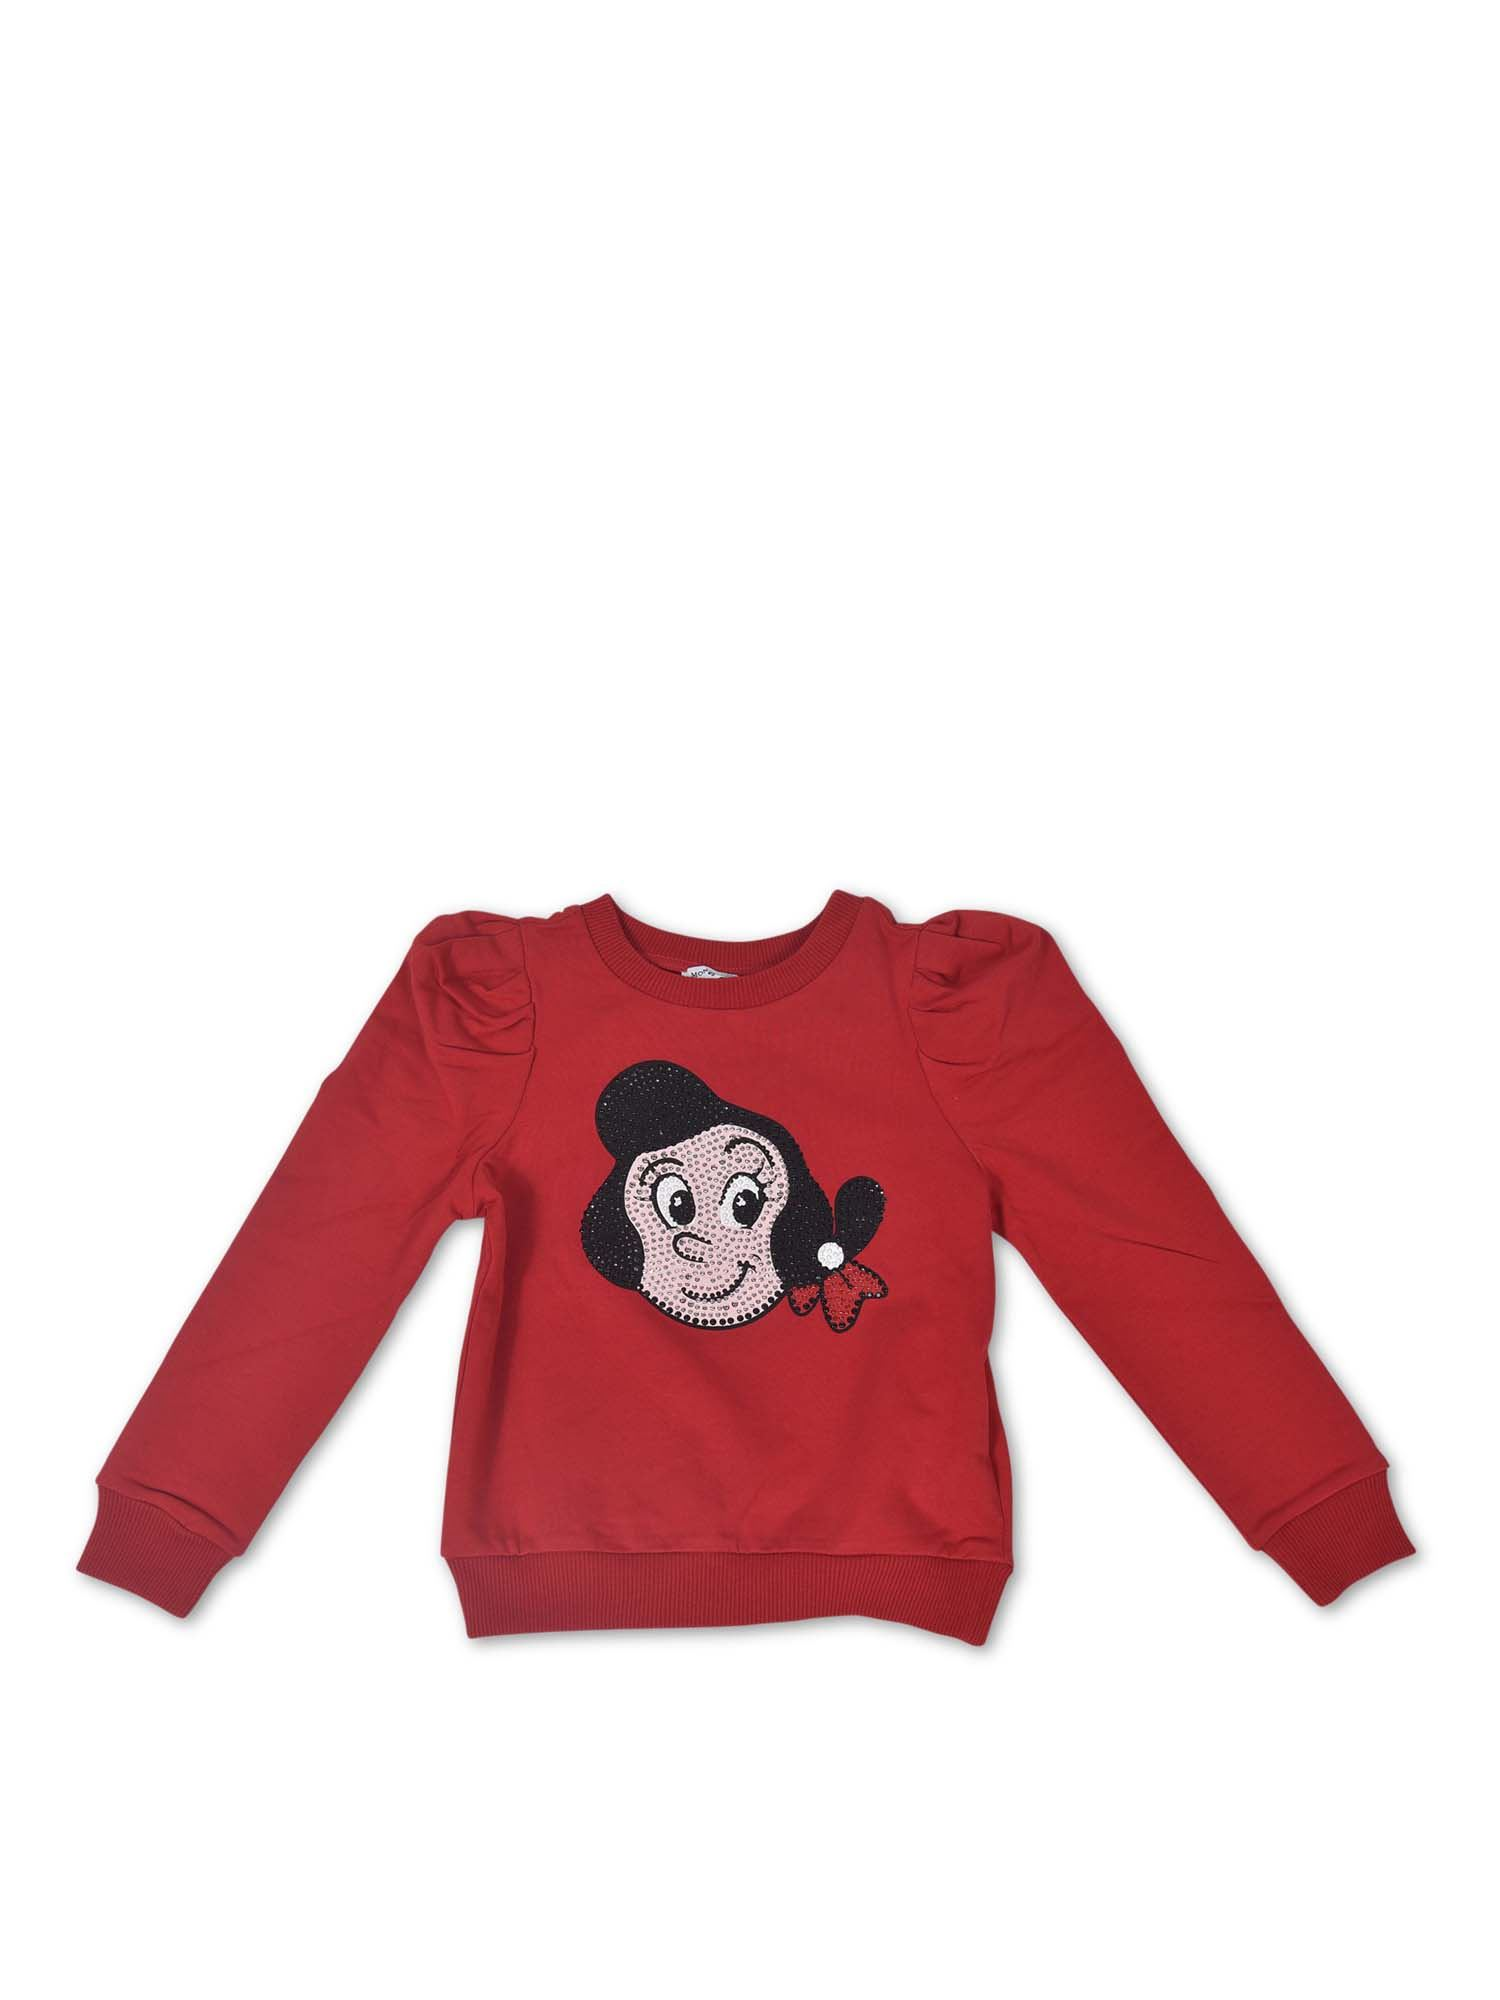 Monnalisa OLIVIA SWEATSHIRT IN RED